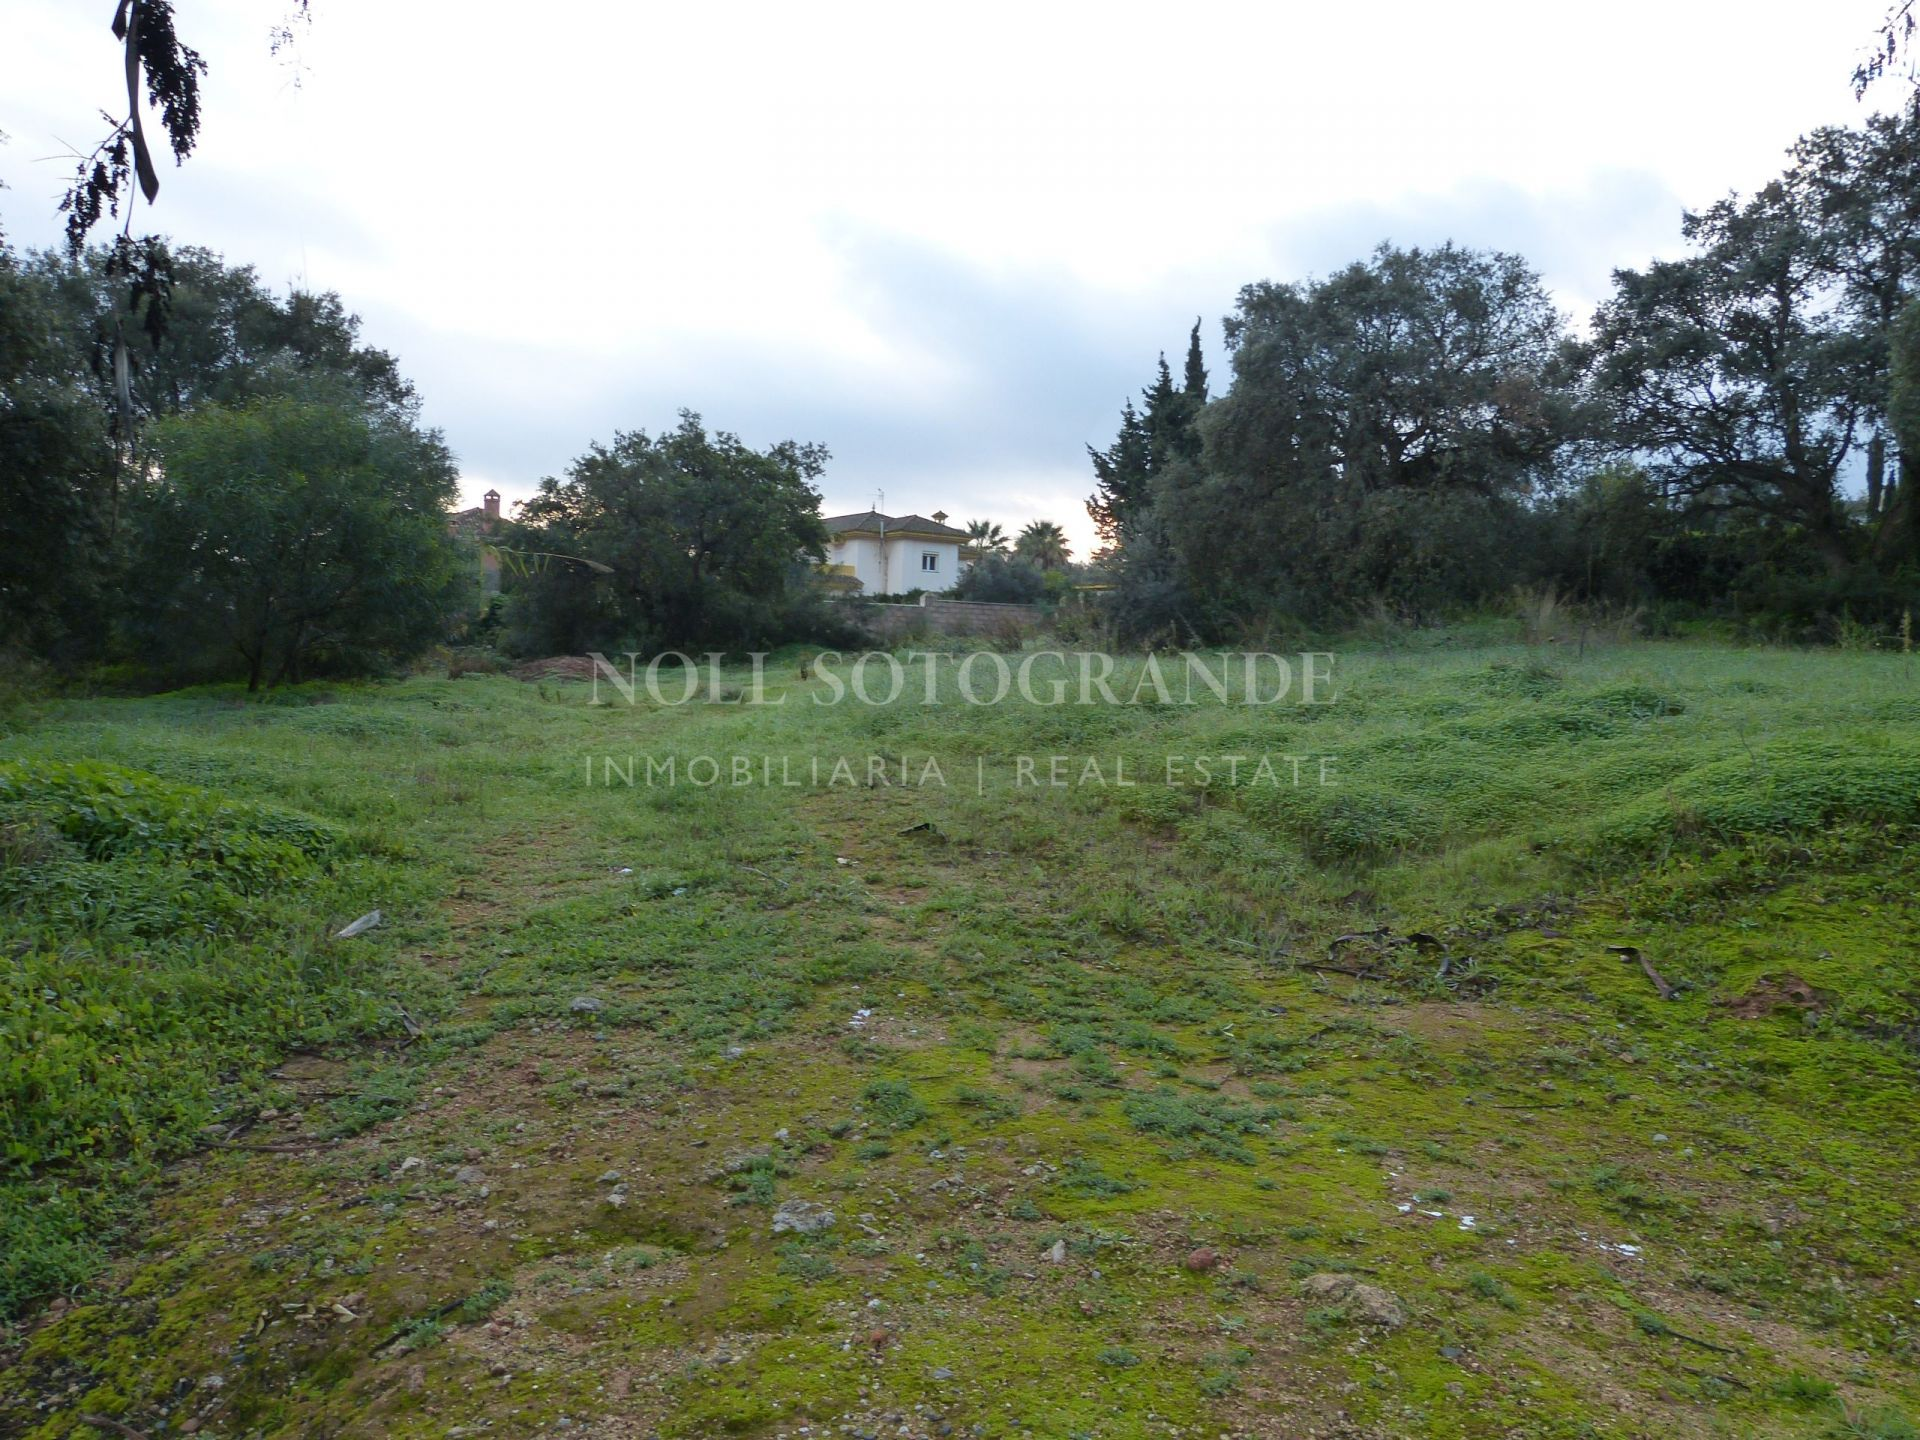 Sotogrande Costa, Plot For Sale in B Zone